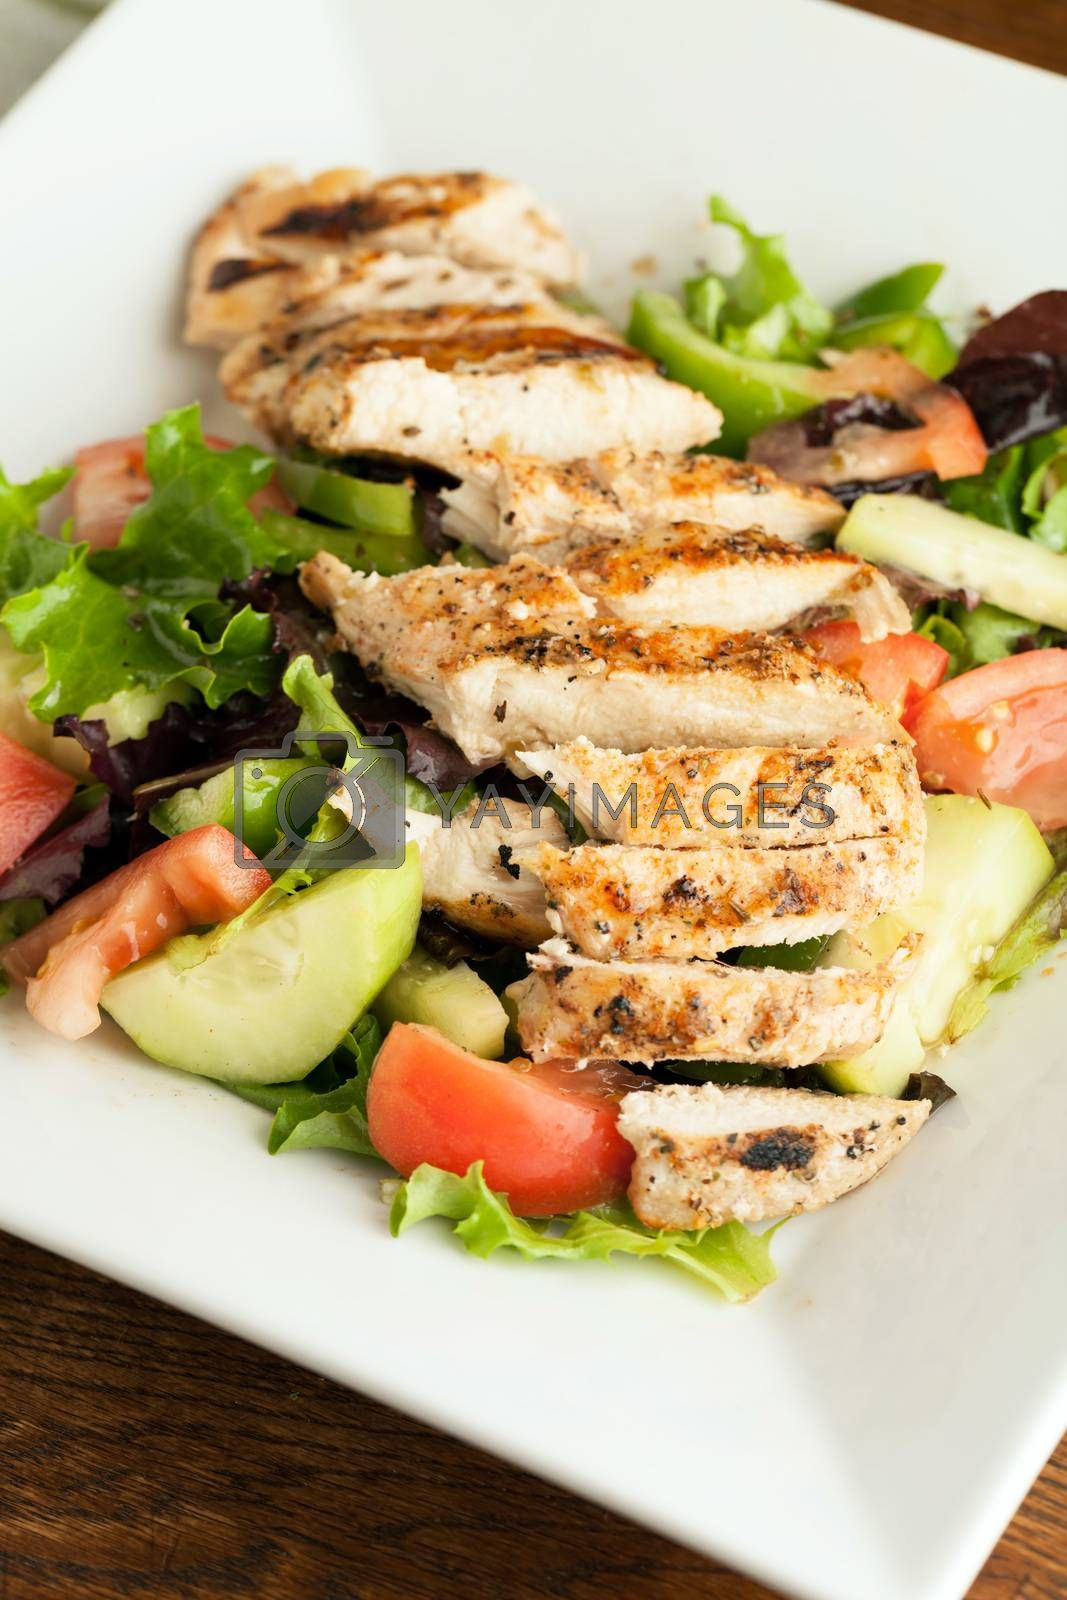 Freshly prepared grilled chicken chef style salad with tomato cucumber green pepper and romaine lettuce.